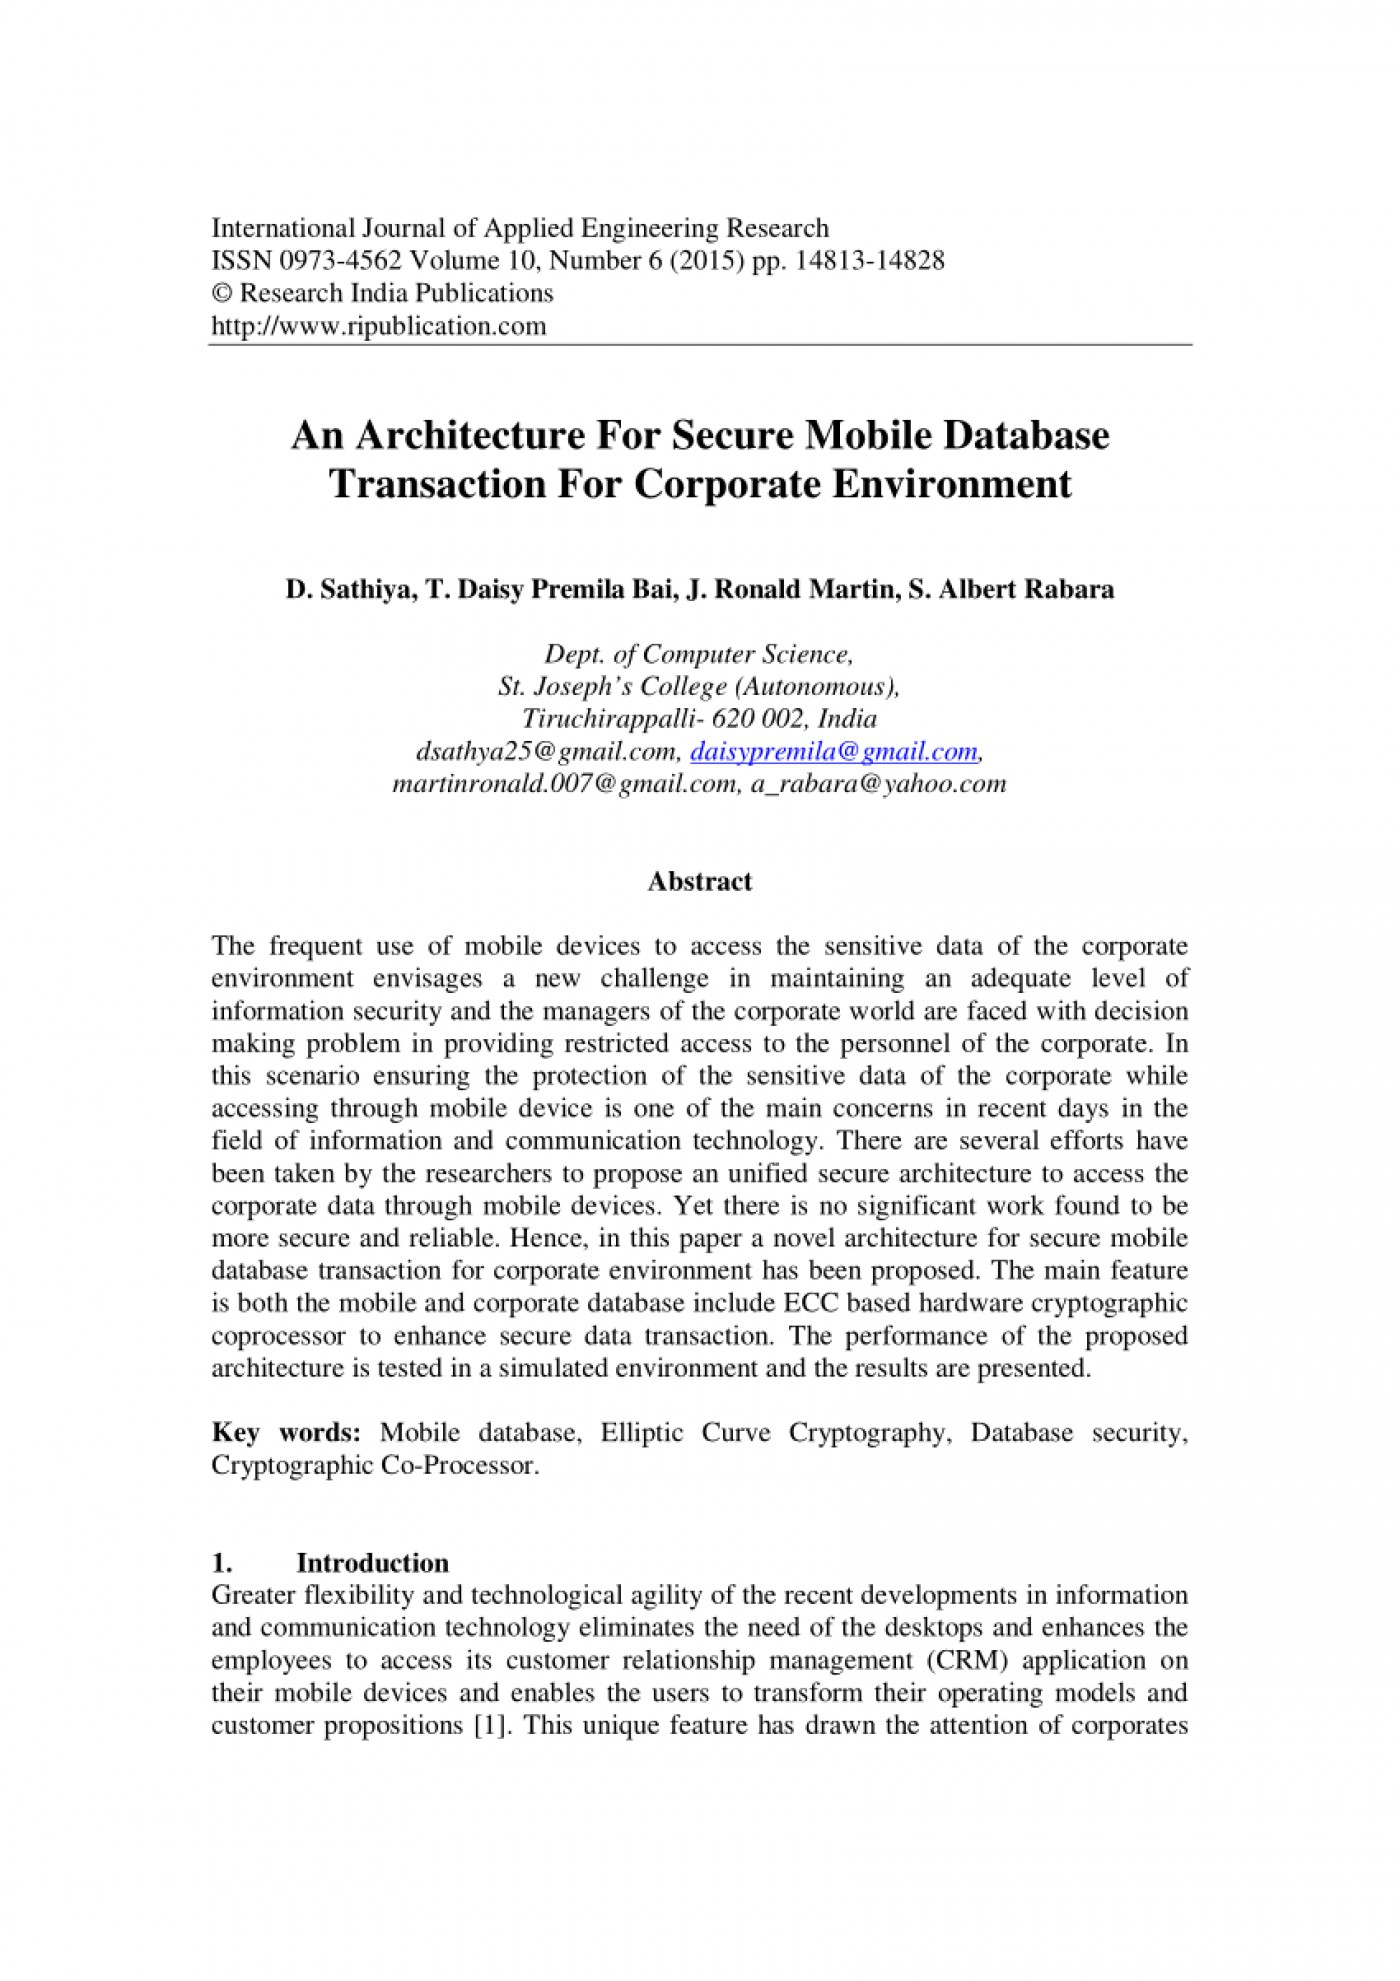 010 Database Security Research Paper Abstract Fascinating 1400